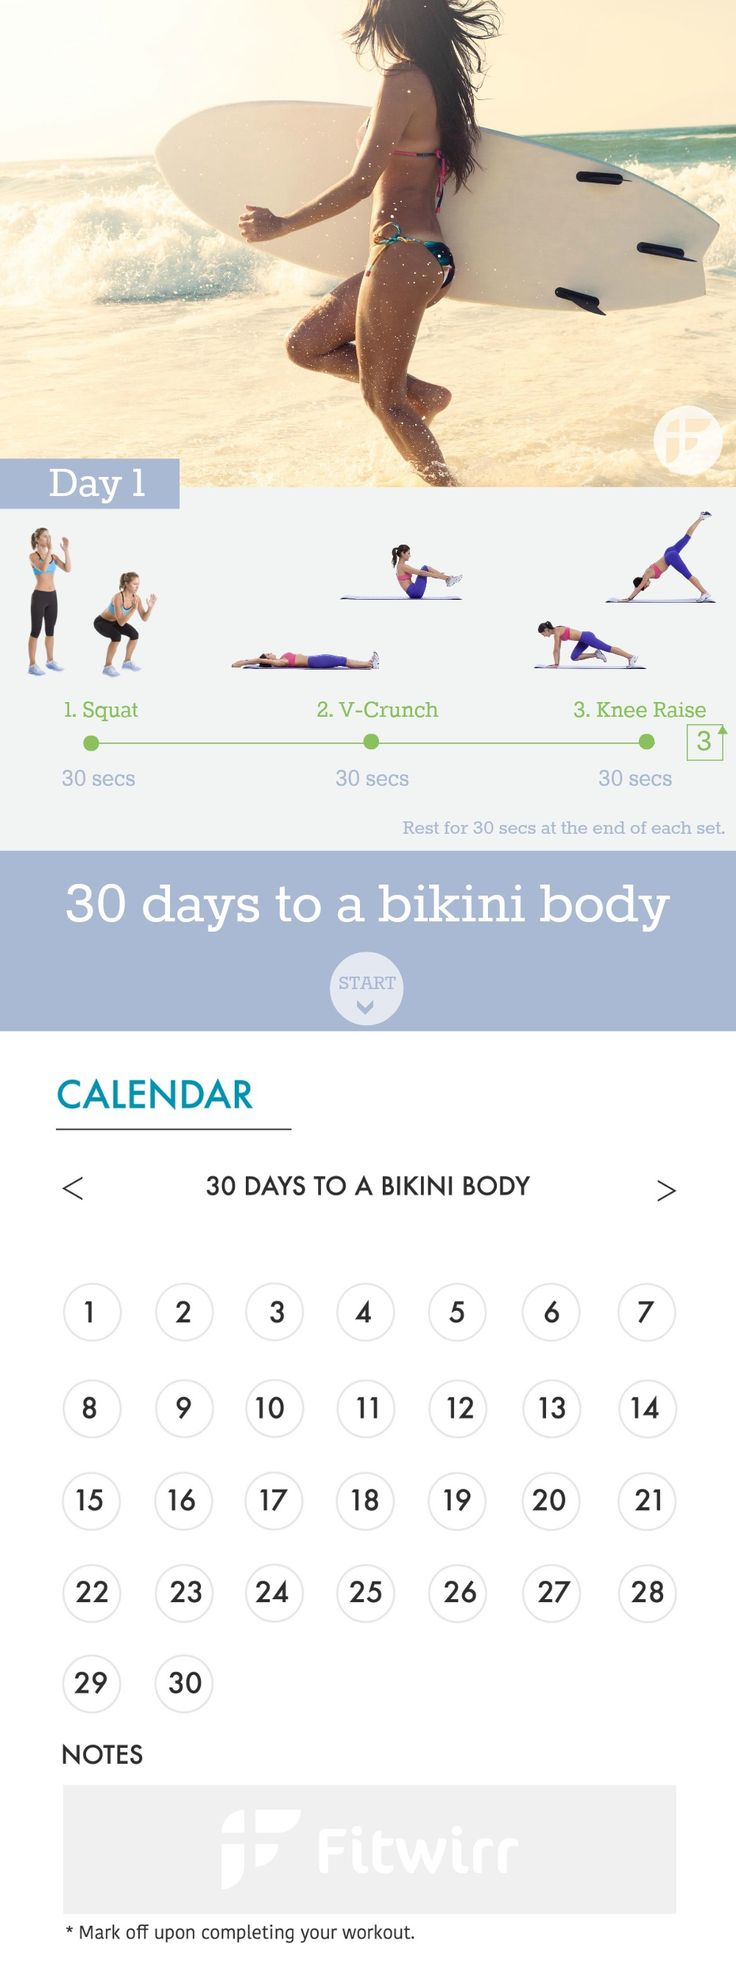 Diet and Nutrition Plan for a Bikini Body, Bikini Contest or Fitness Contest (with PDF)